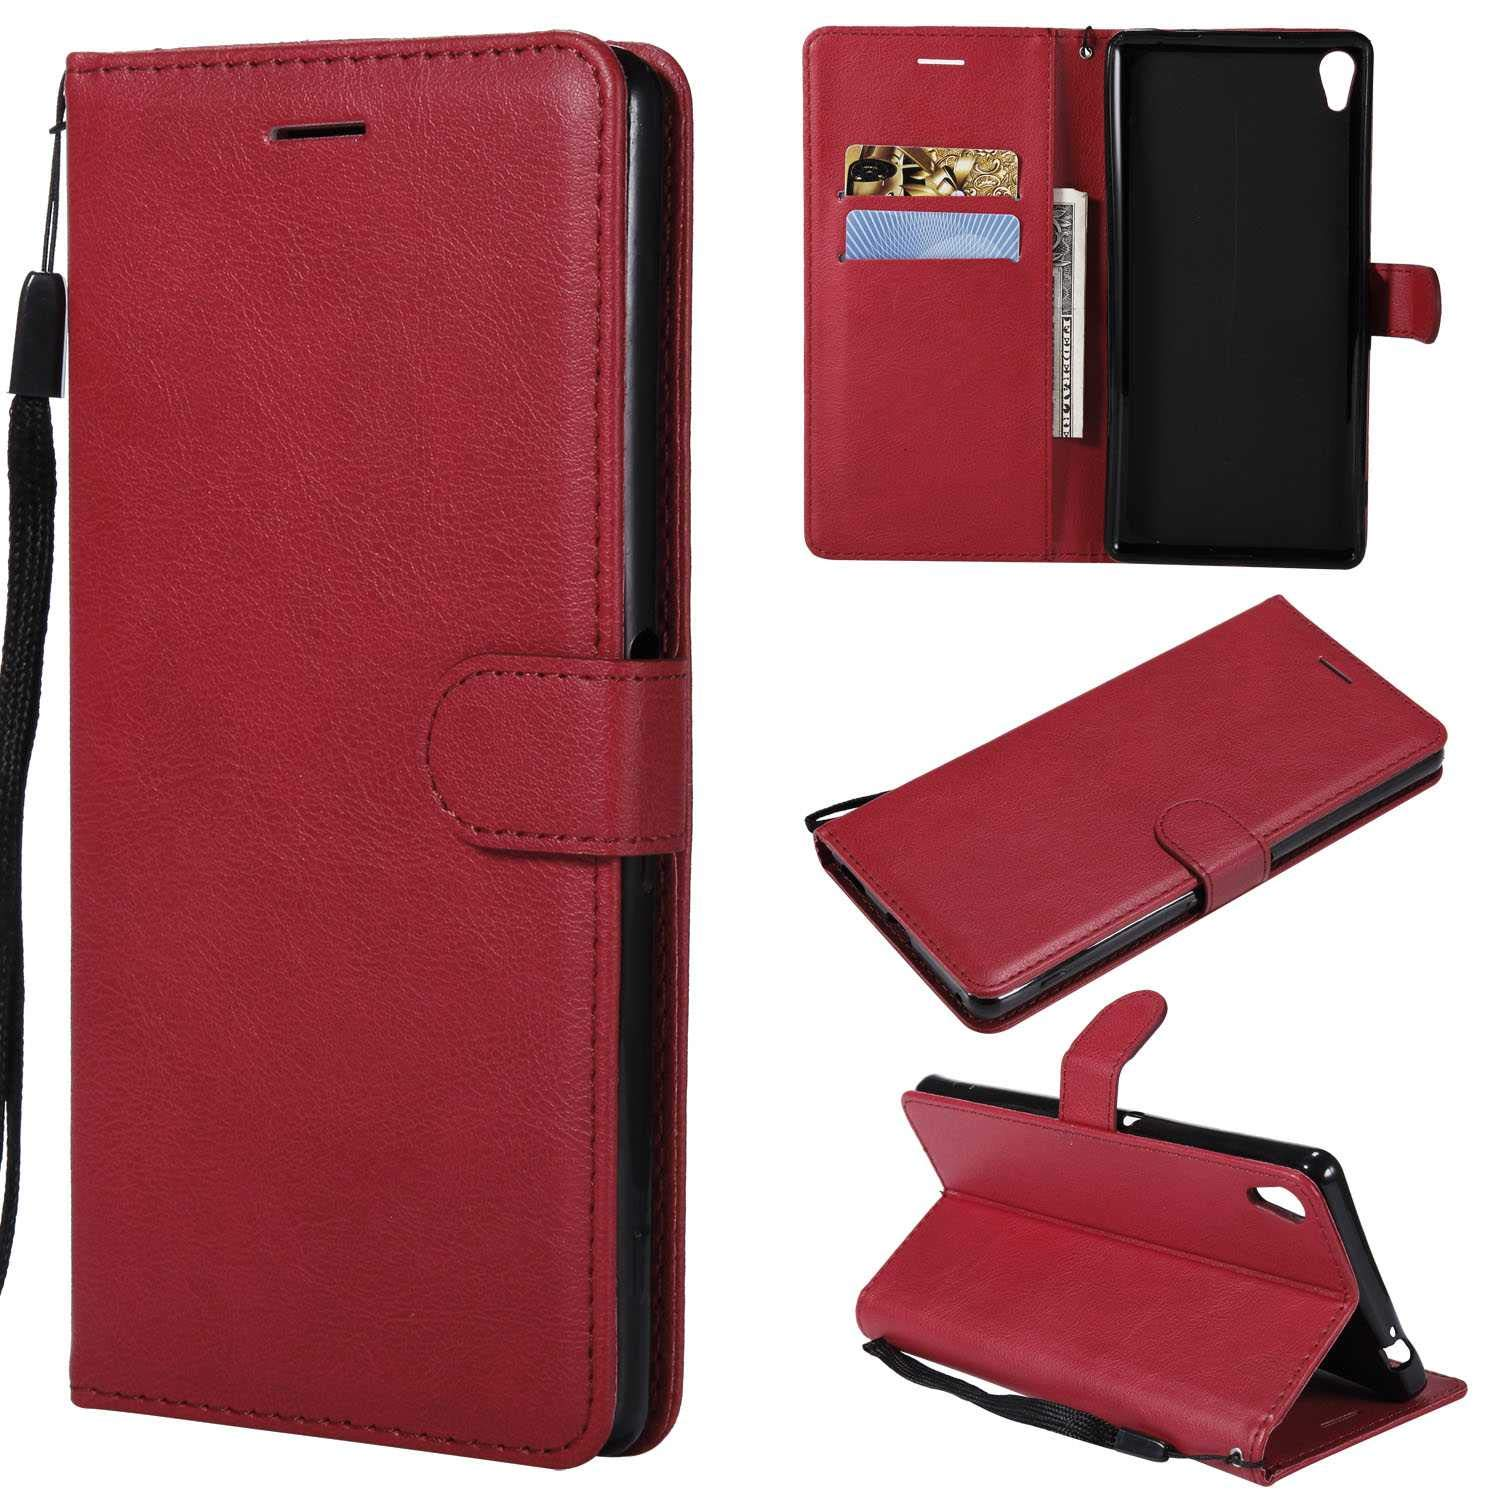 Sony Xperia XA Ultra Wallet Case, CUSKING Premium Leather Cover with Silicone Inner Case for Sony Xperia XA Ultra [Card Holder] [Magnetic Closure] [Hand Strap] - Red